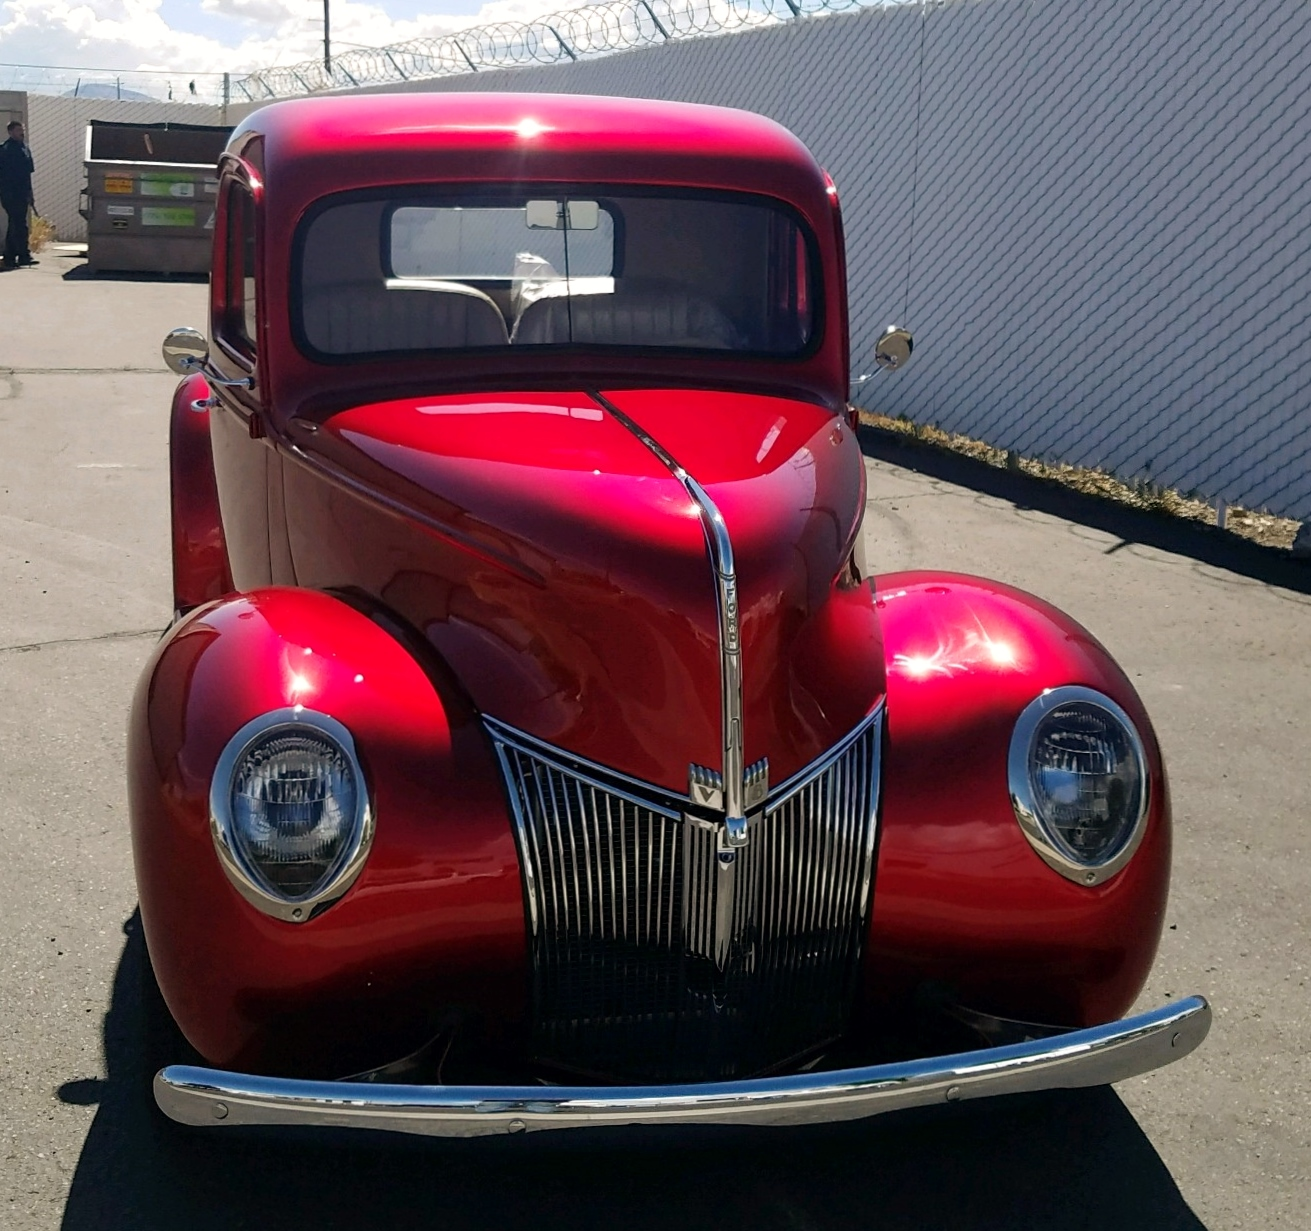 1940 Ford Pickup Truck Candy Apple Red 5.jpeg